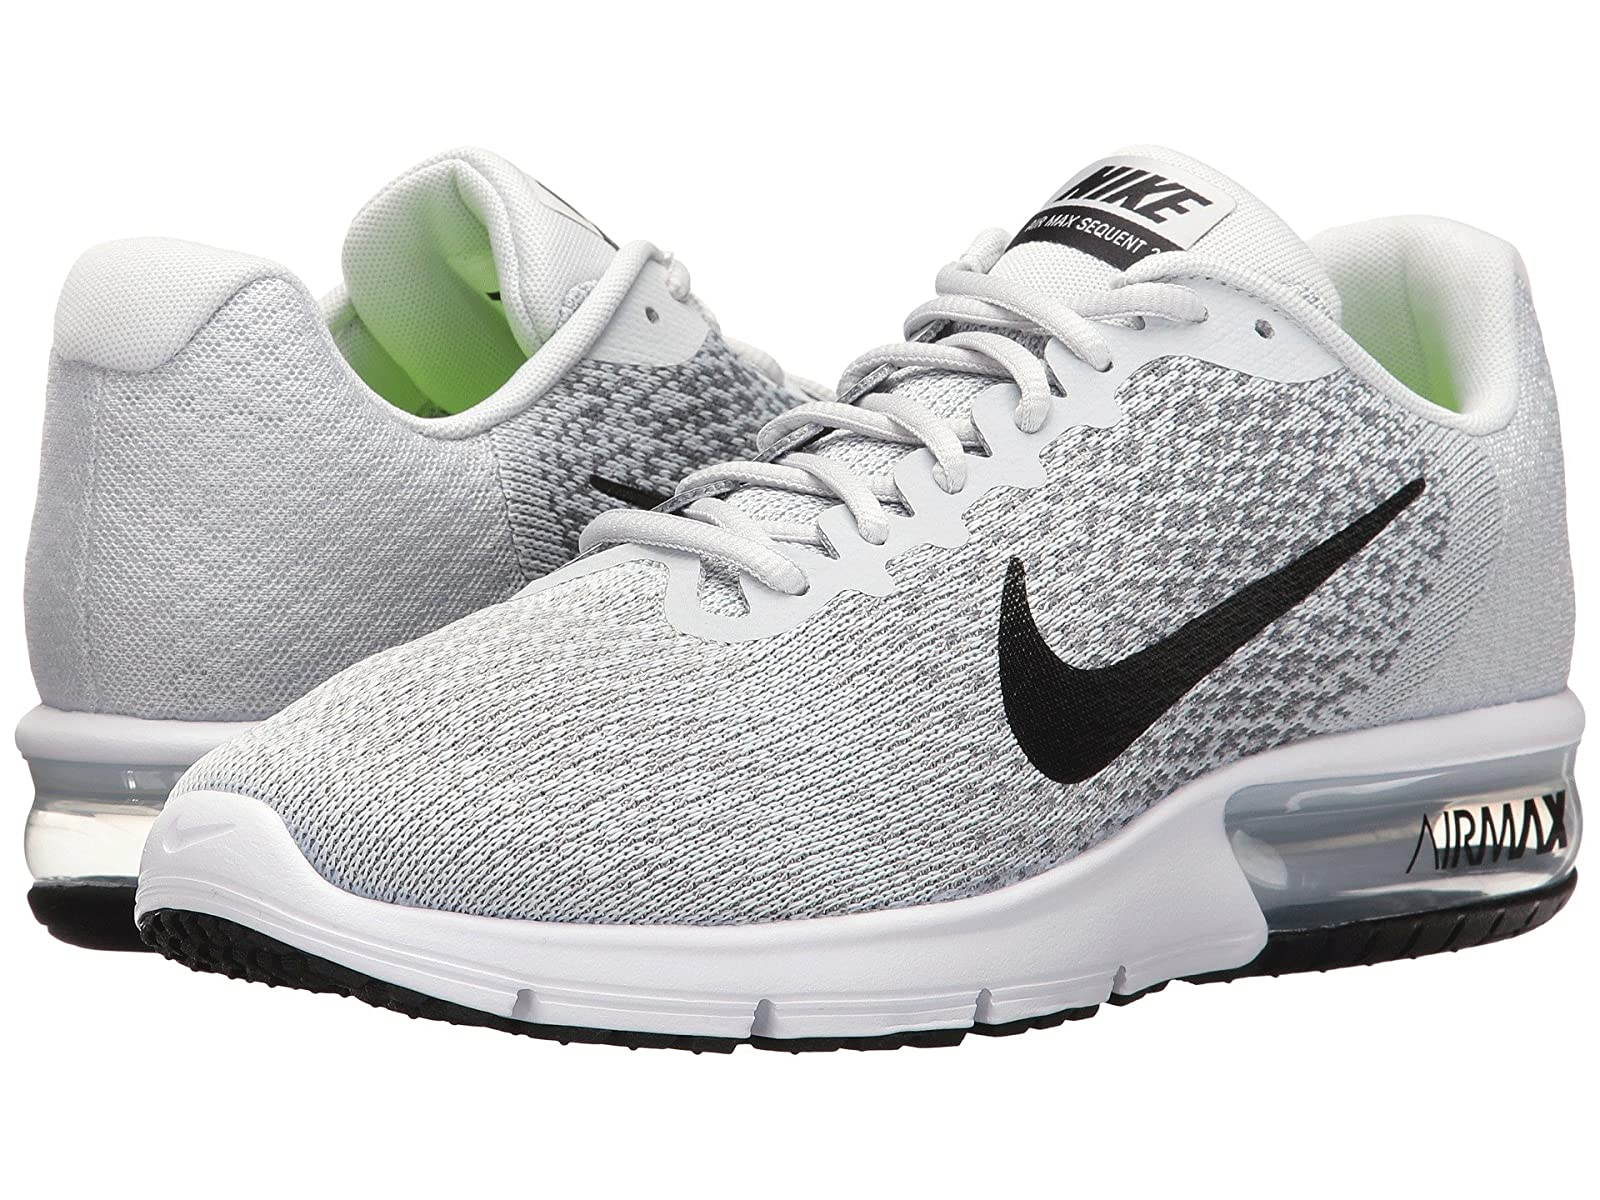 Nike Air Max Sequent 2Cheap and distinctive eye-catching shoes